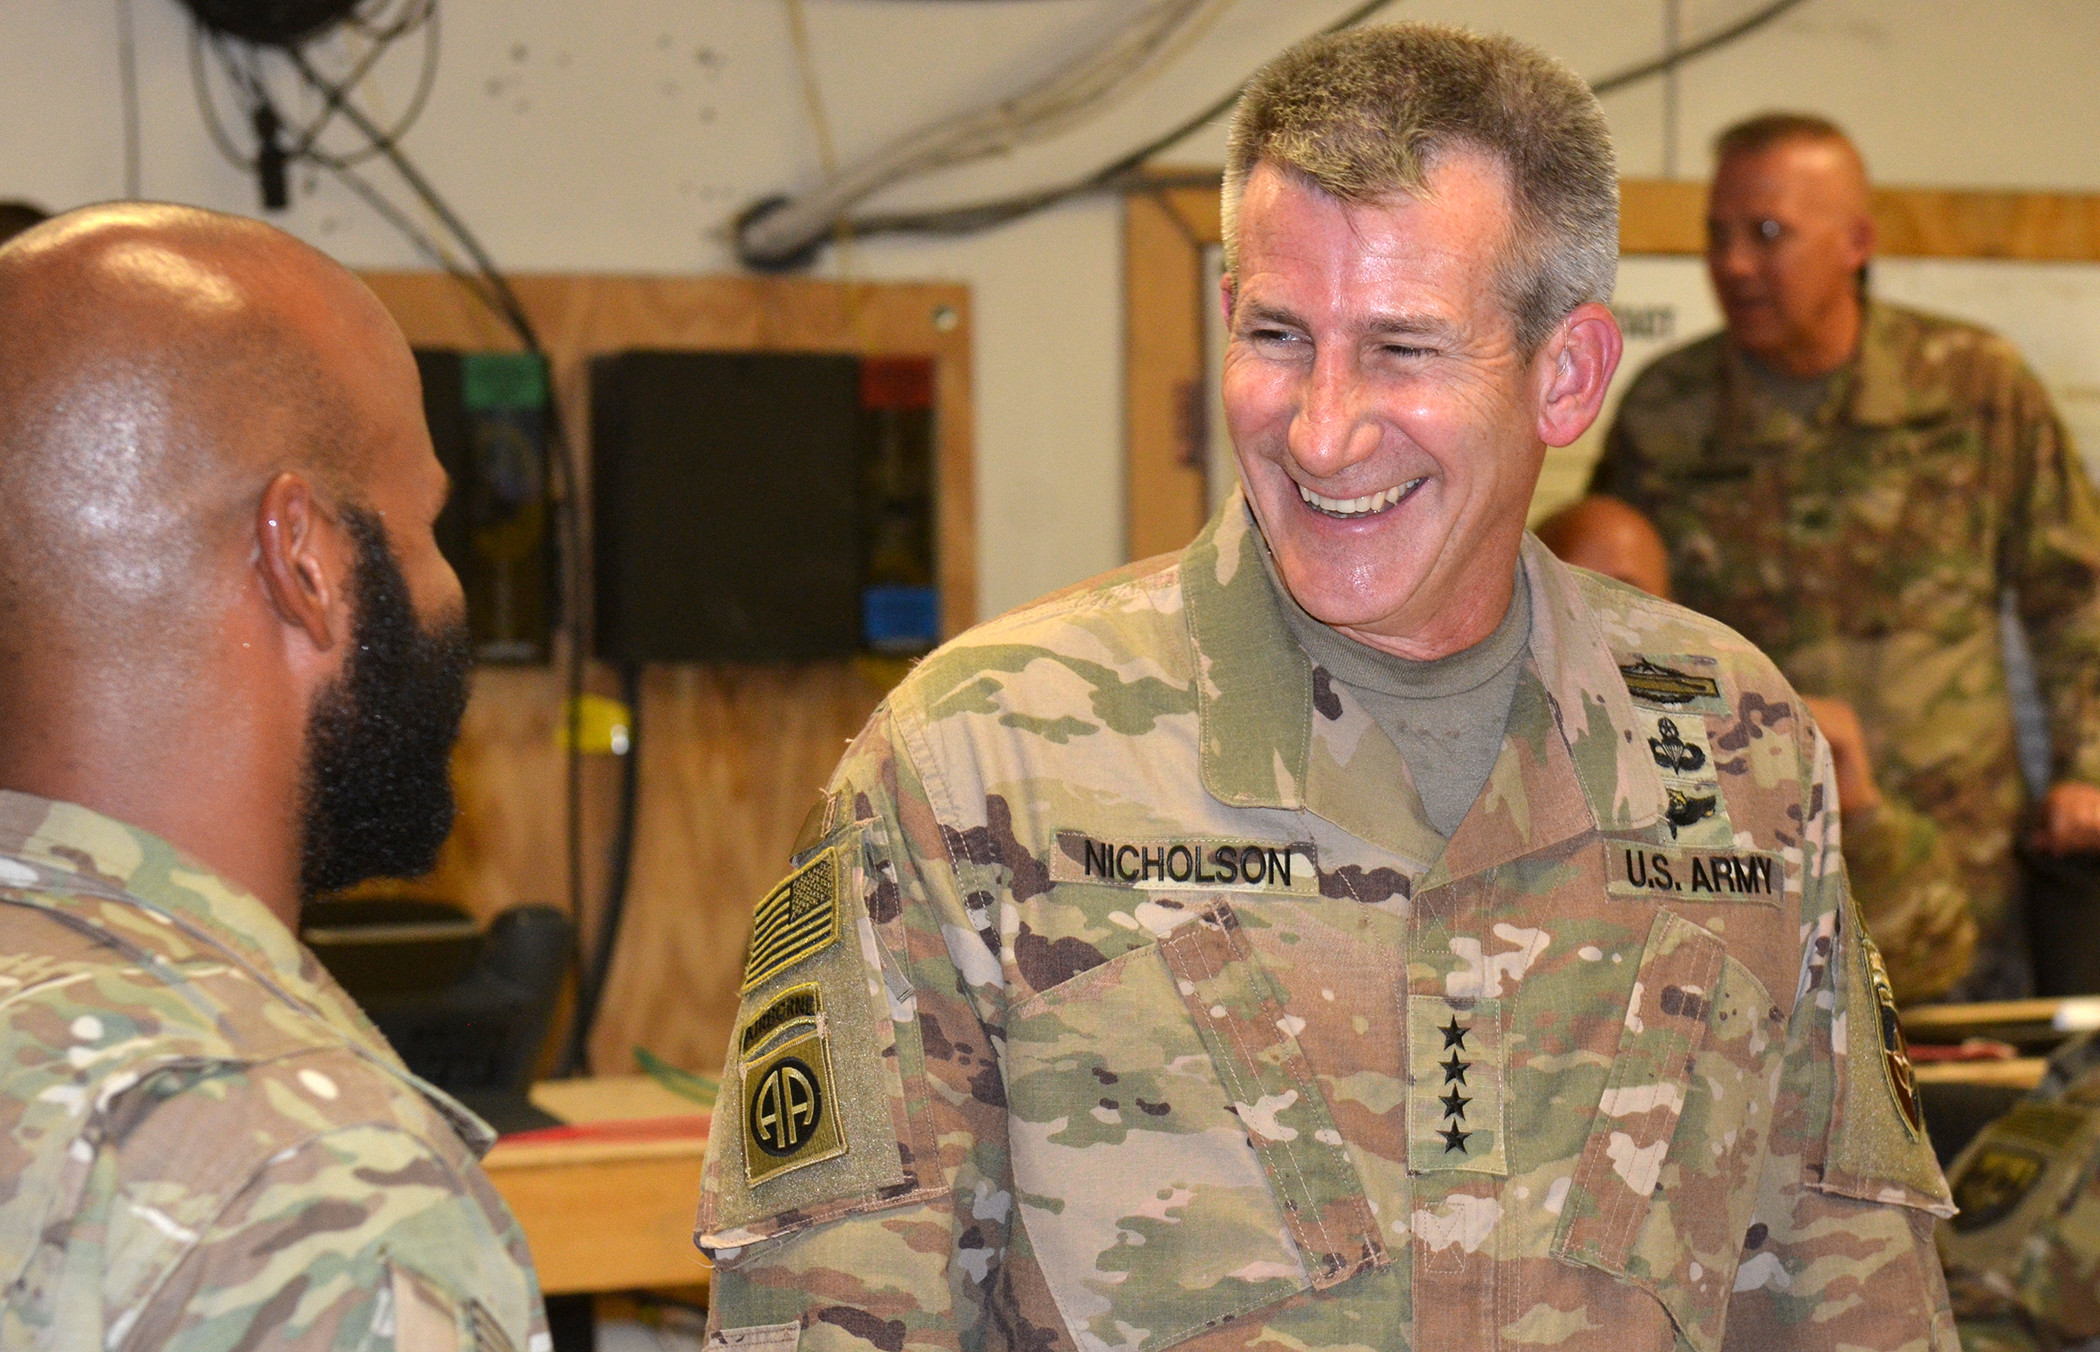 LAGHMAN PROVINCE, Afghanistan (August 09, 2018) -- U.S. Army Gen. John Nicholson, Resolute Support and U.S. Forces-Afghanistan commander visits with service members at Train, Advise and Assist Command-East, August 9, 2018. (NATO photo by Cmdr. Robert Thoms)